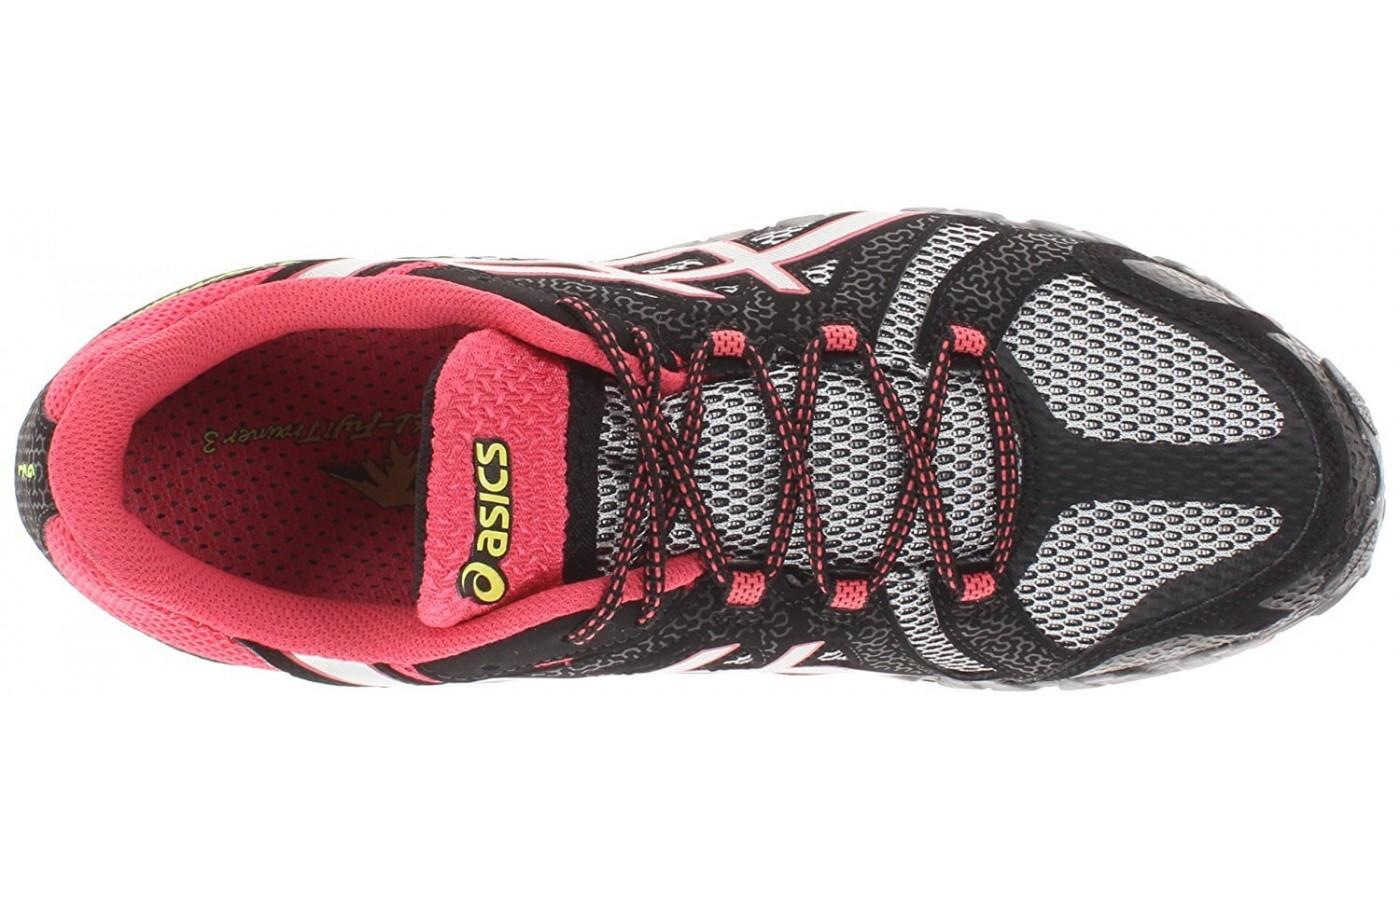 the upper of the Asics Gel FujiTrainer 3 has lots of open mesh for breathability